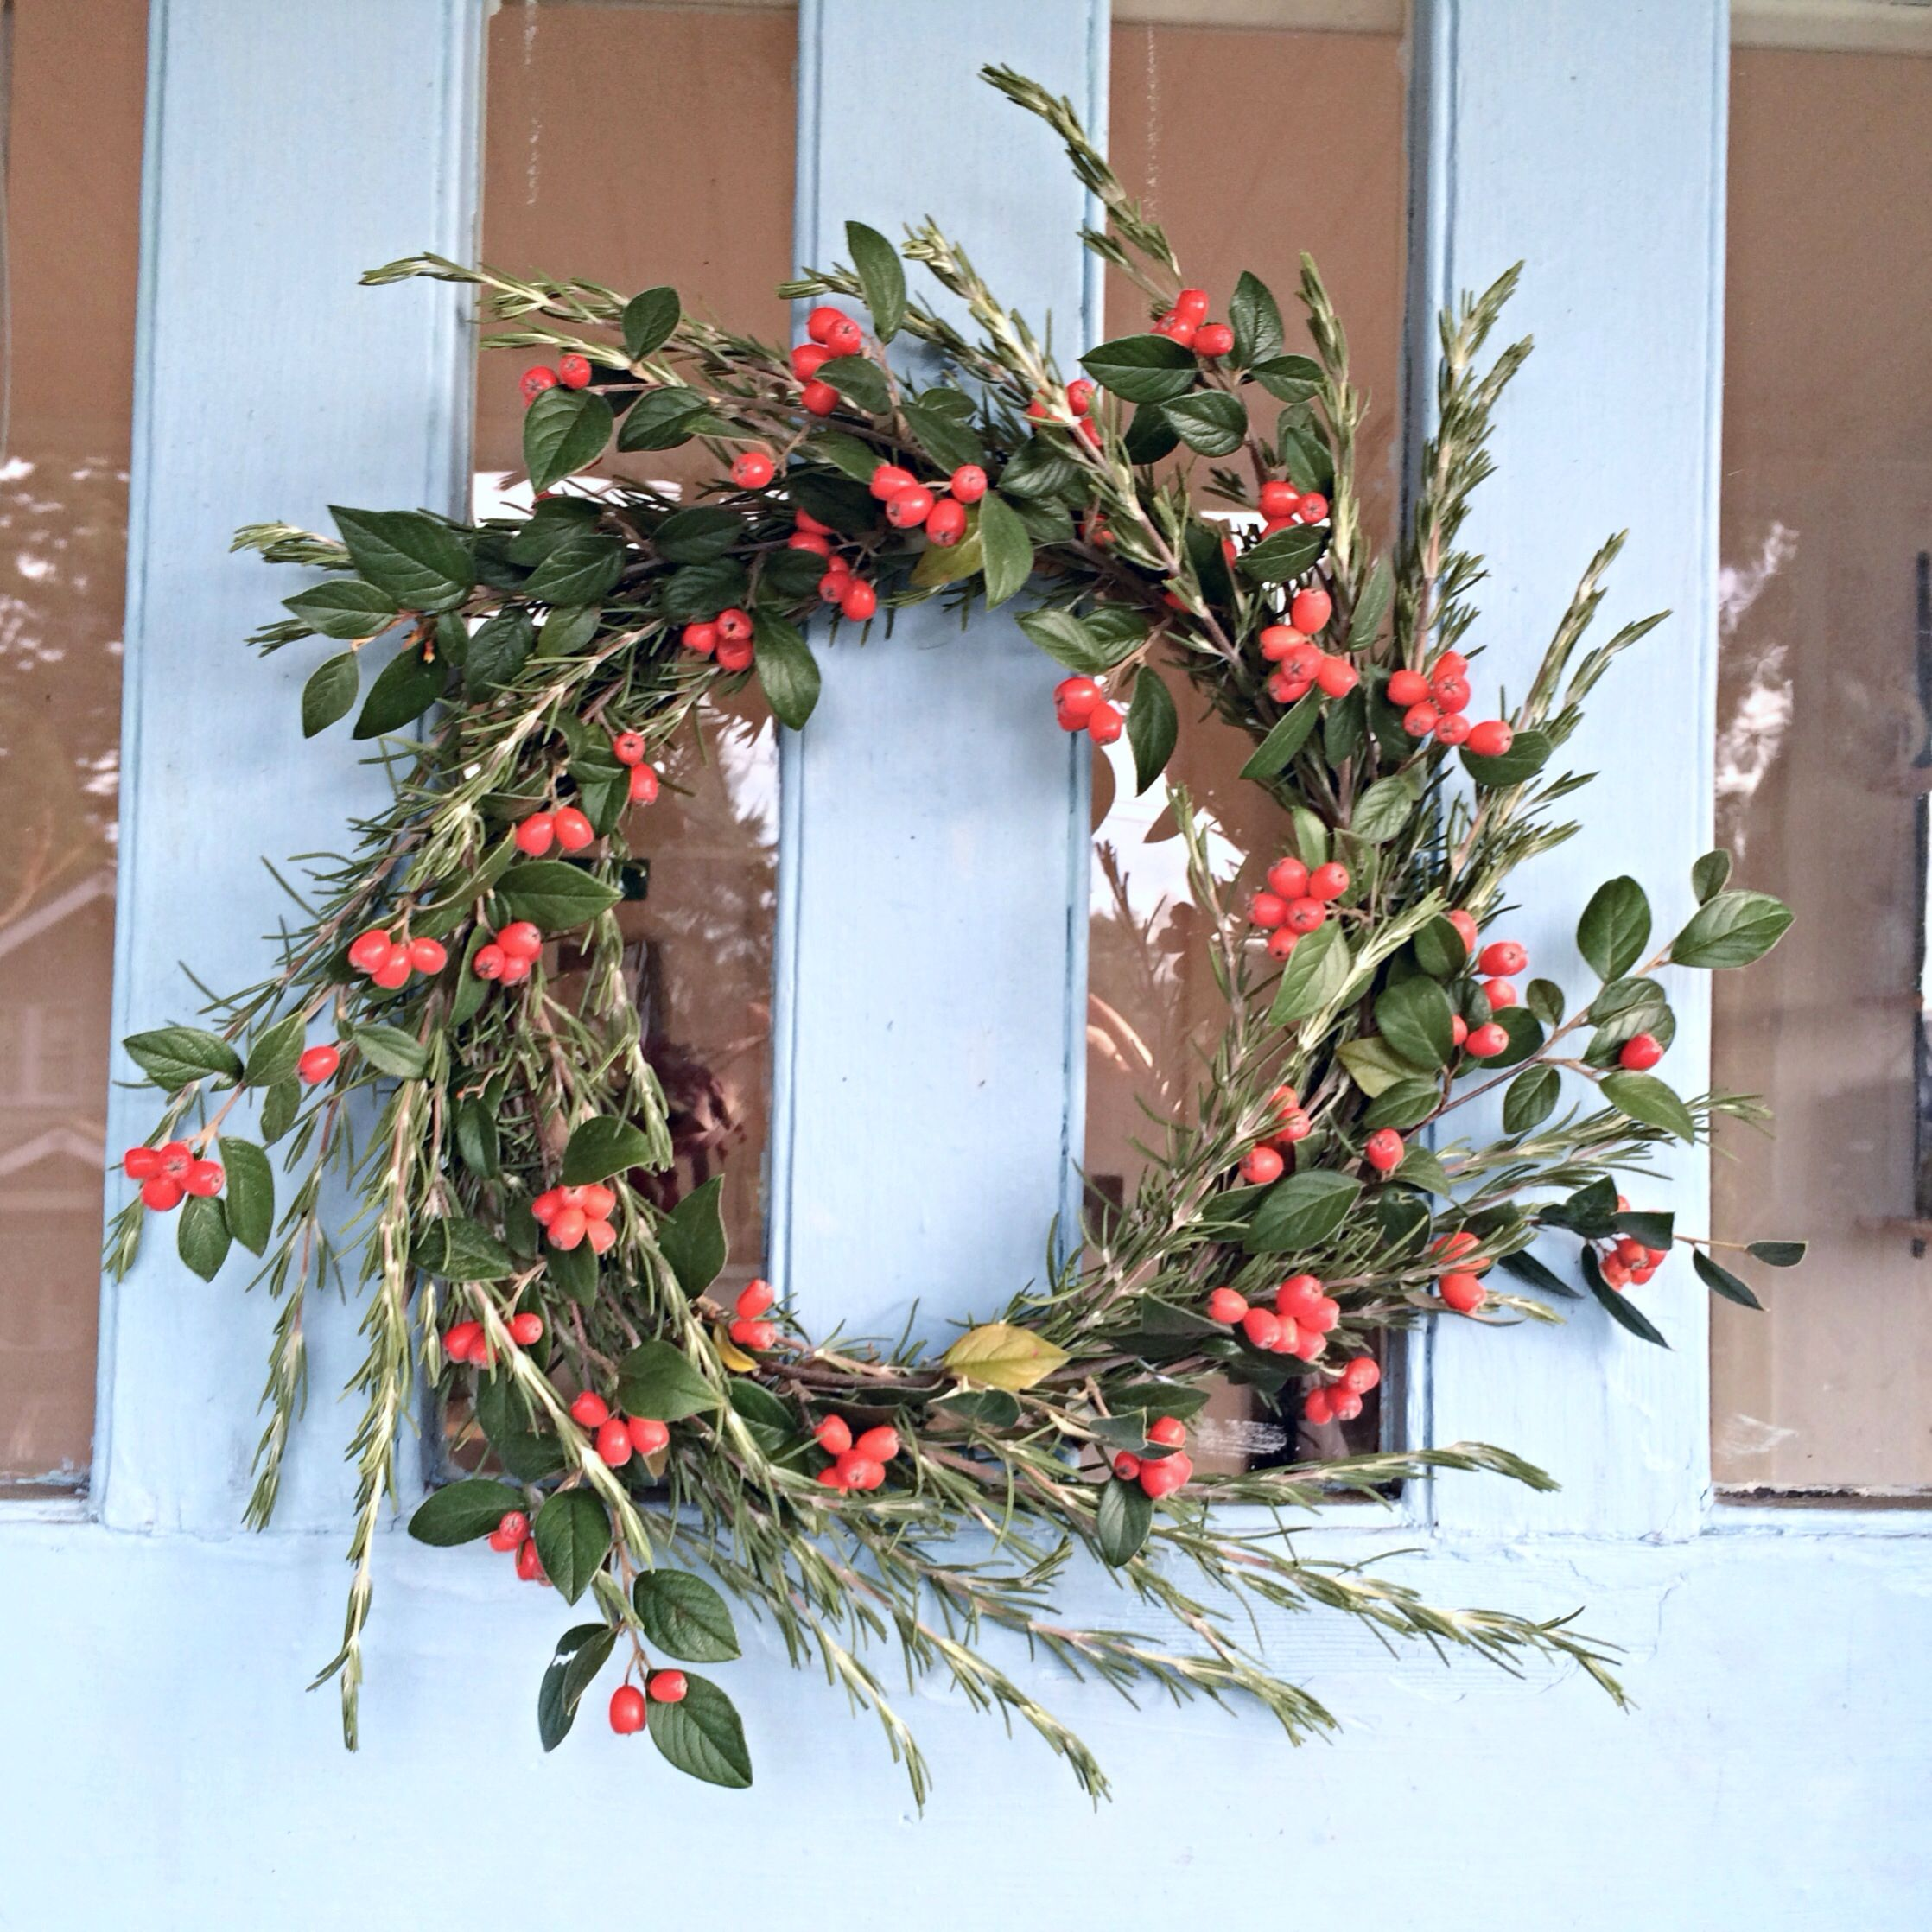 DIY holiday wreath with rosemary from my garden